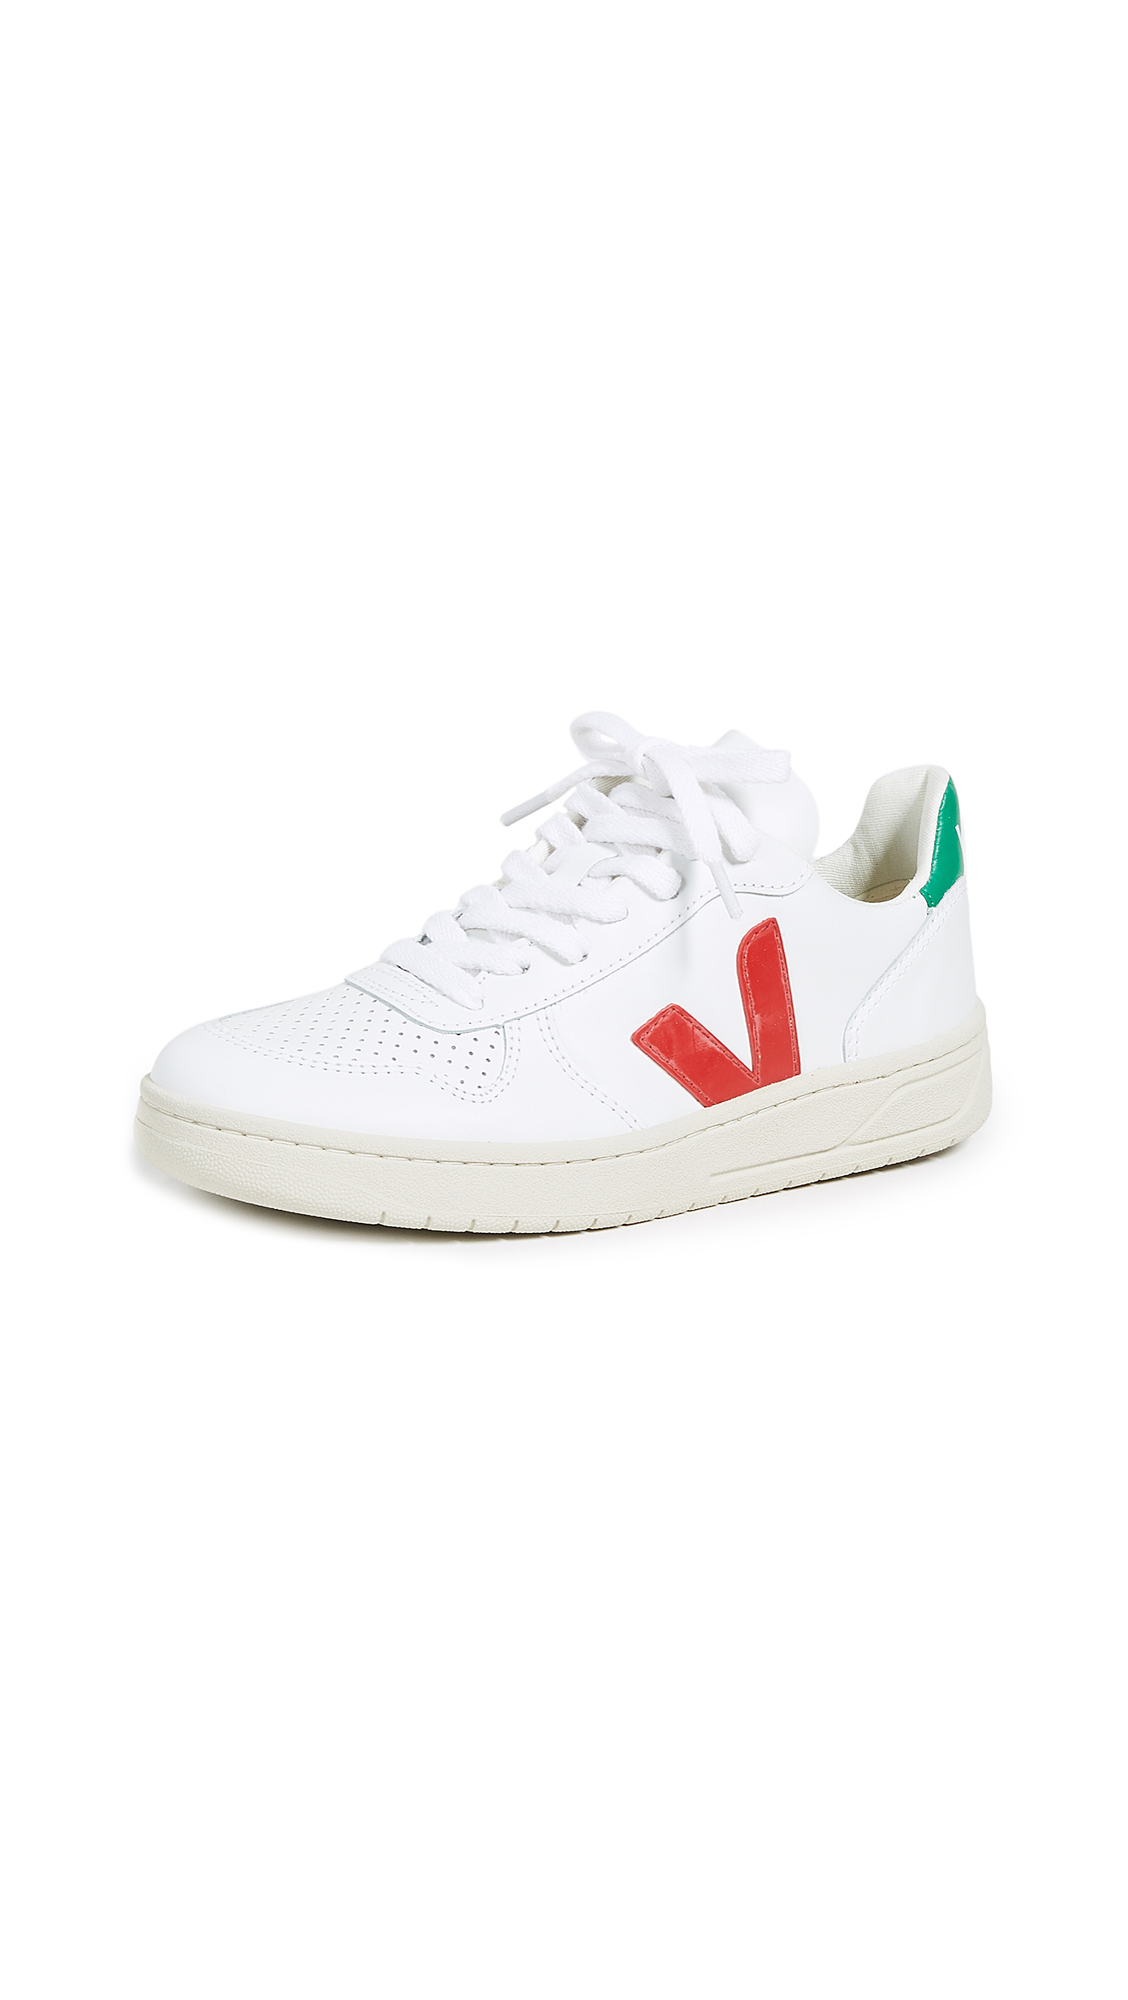 Veja V-10 Lace Up Sneakers - Extra White/Pekin/Emeraude